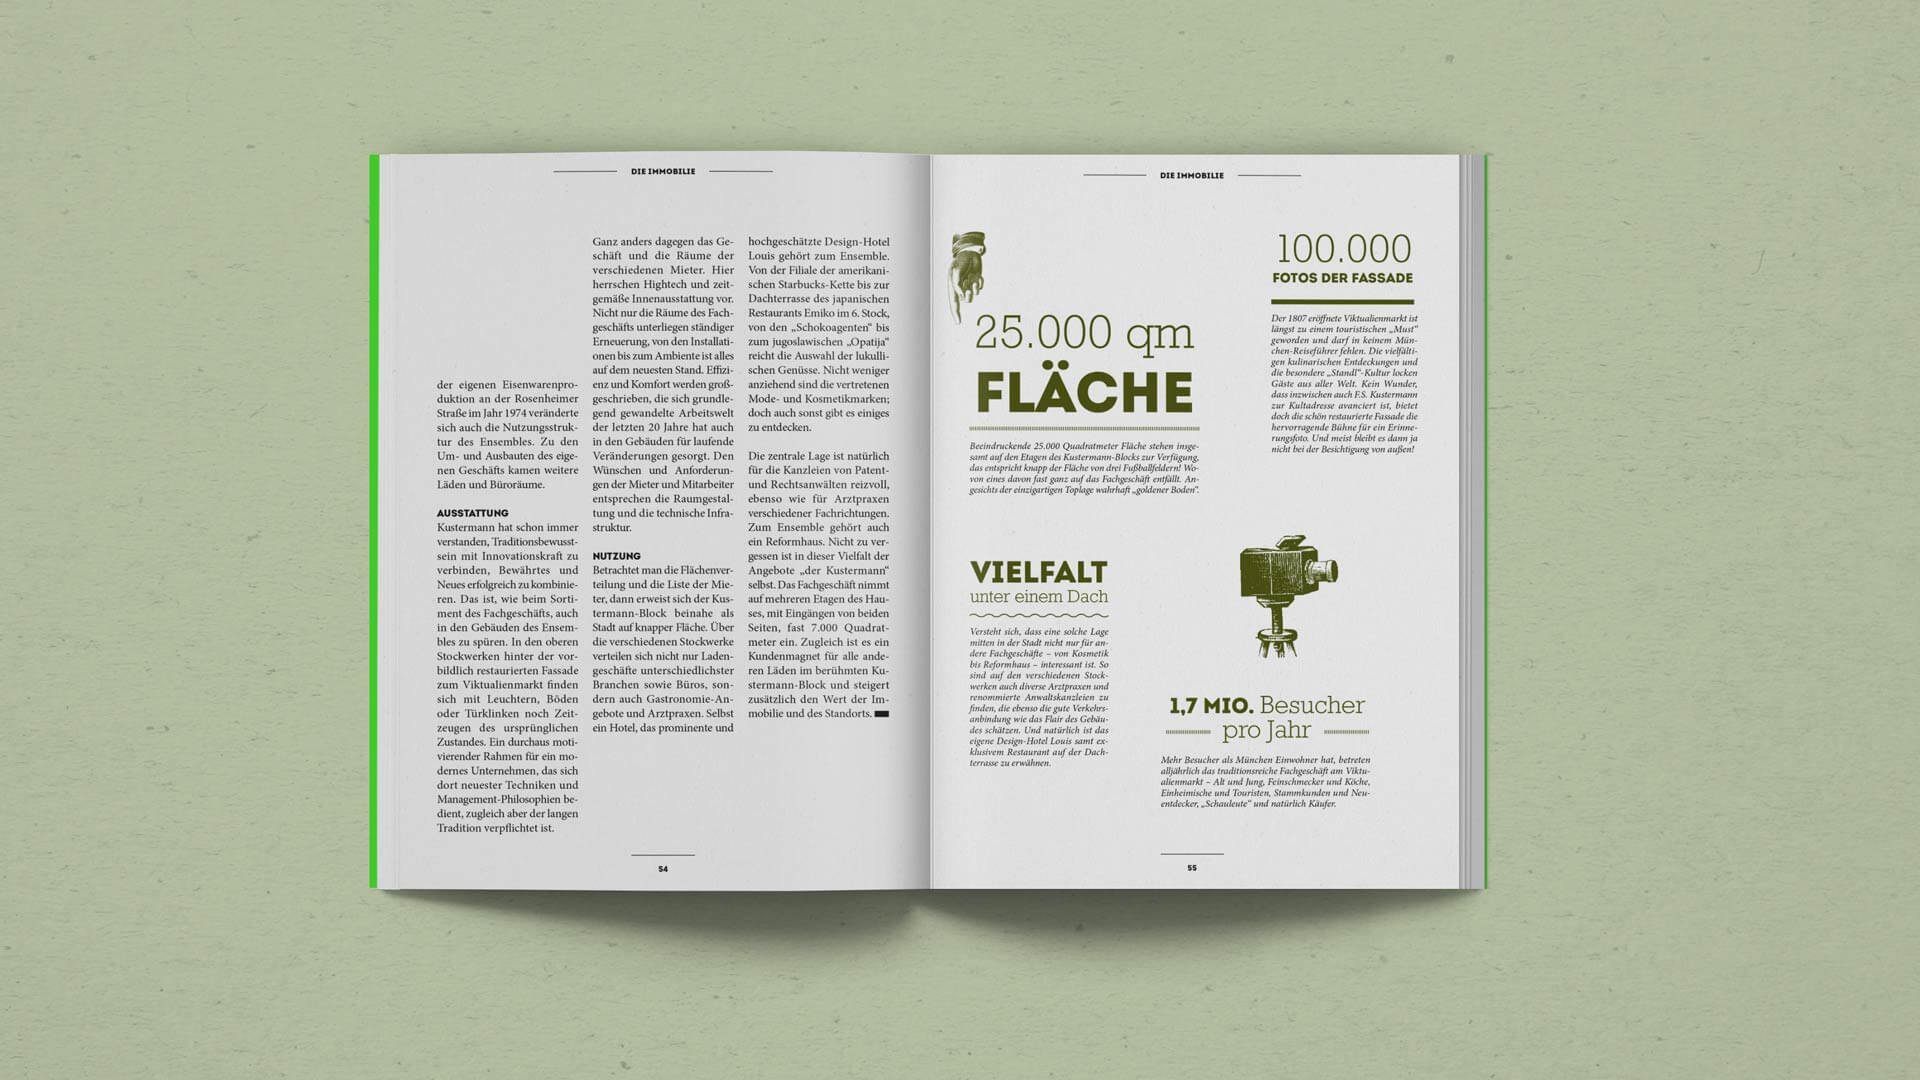 Text Spread with old illustrations in the Property Chapter in the Kustermann Brochure